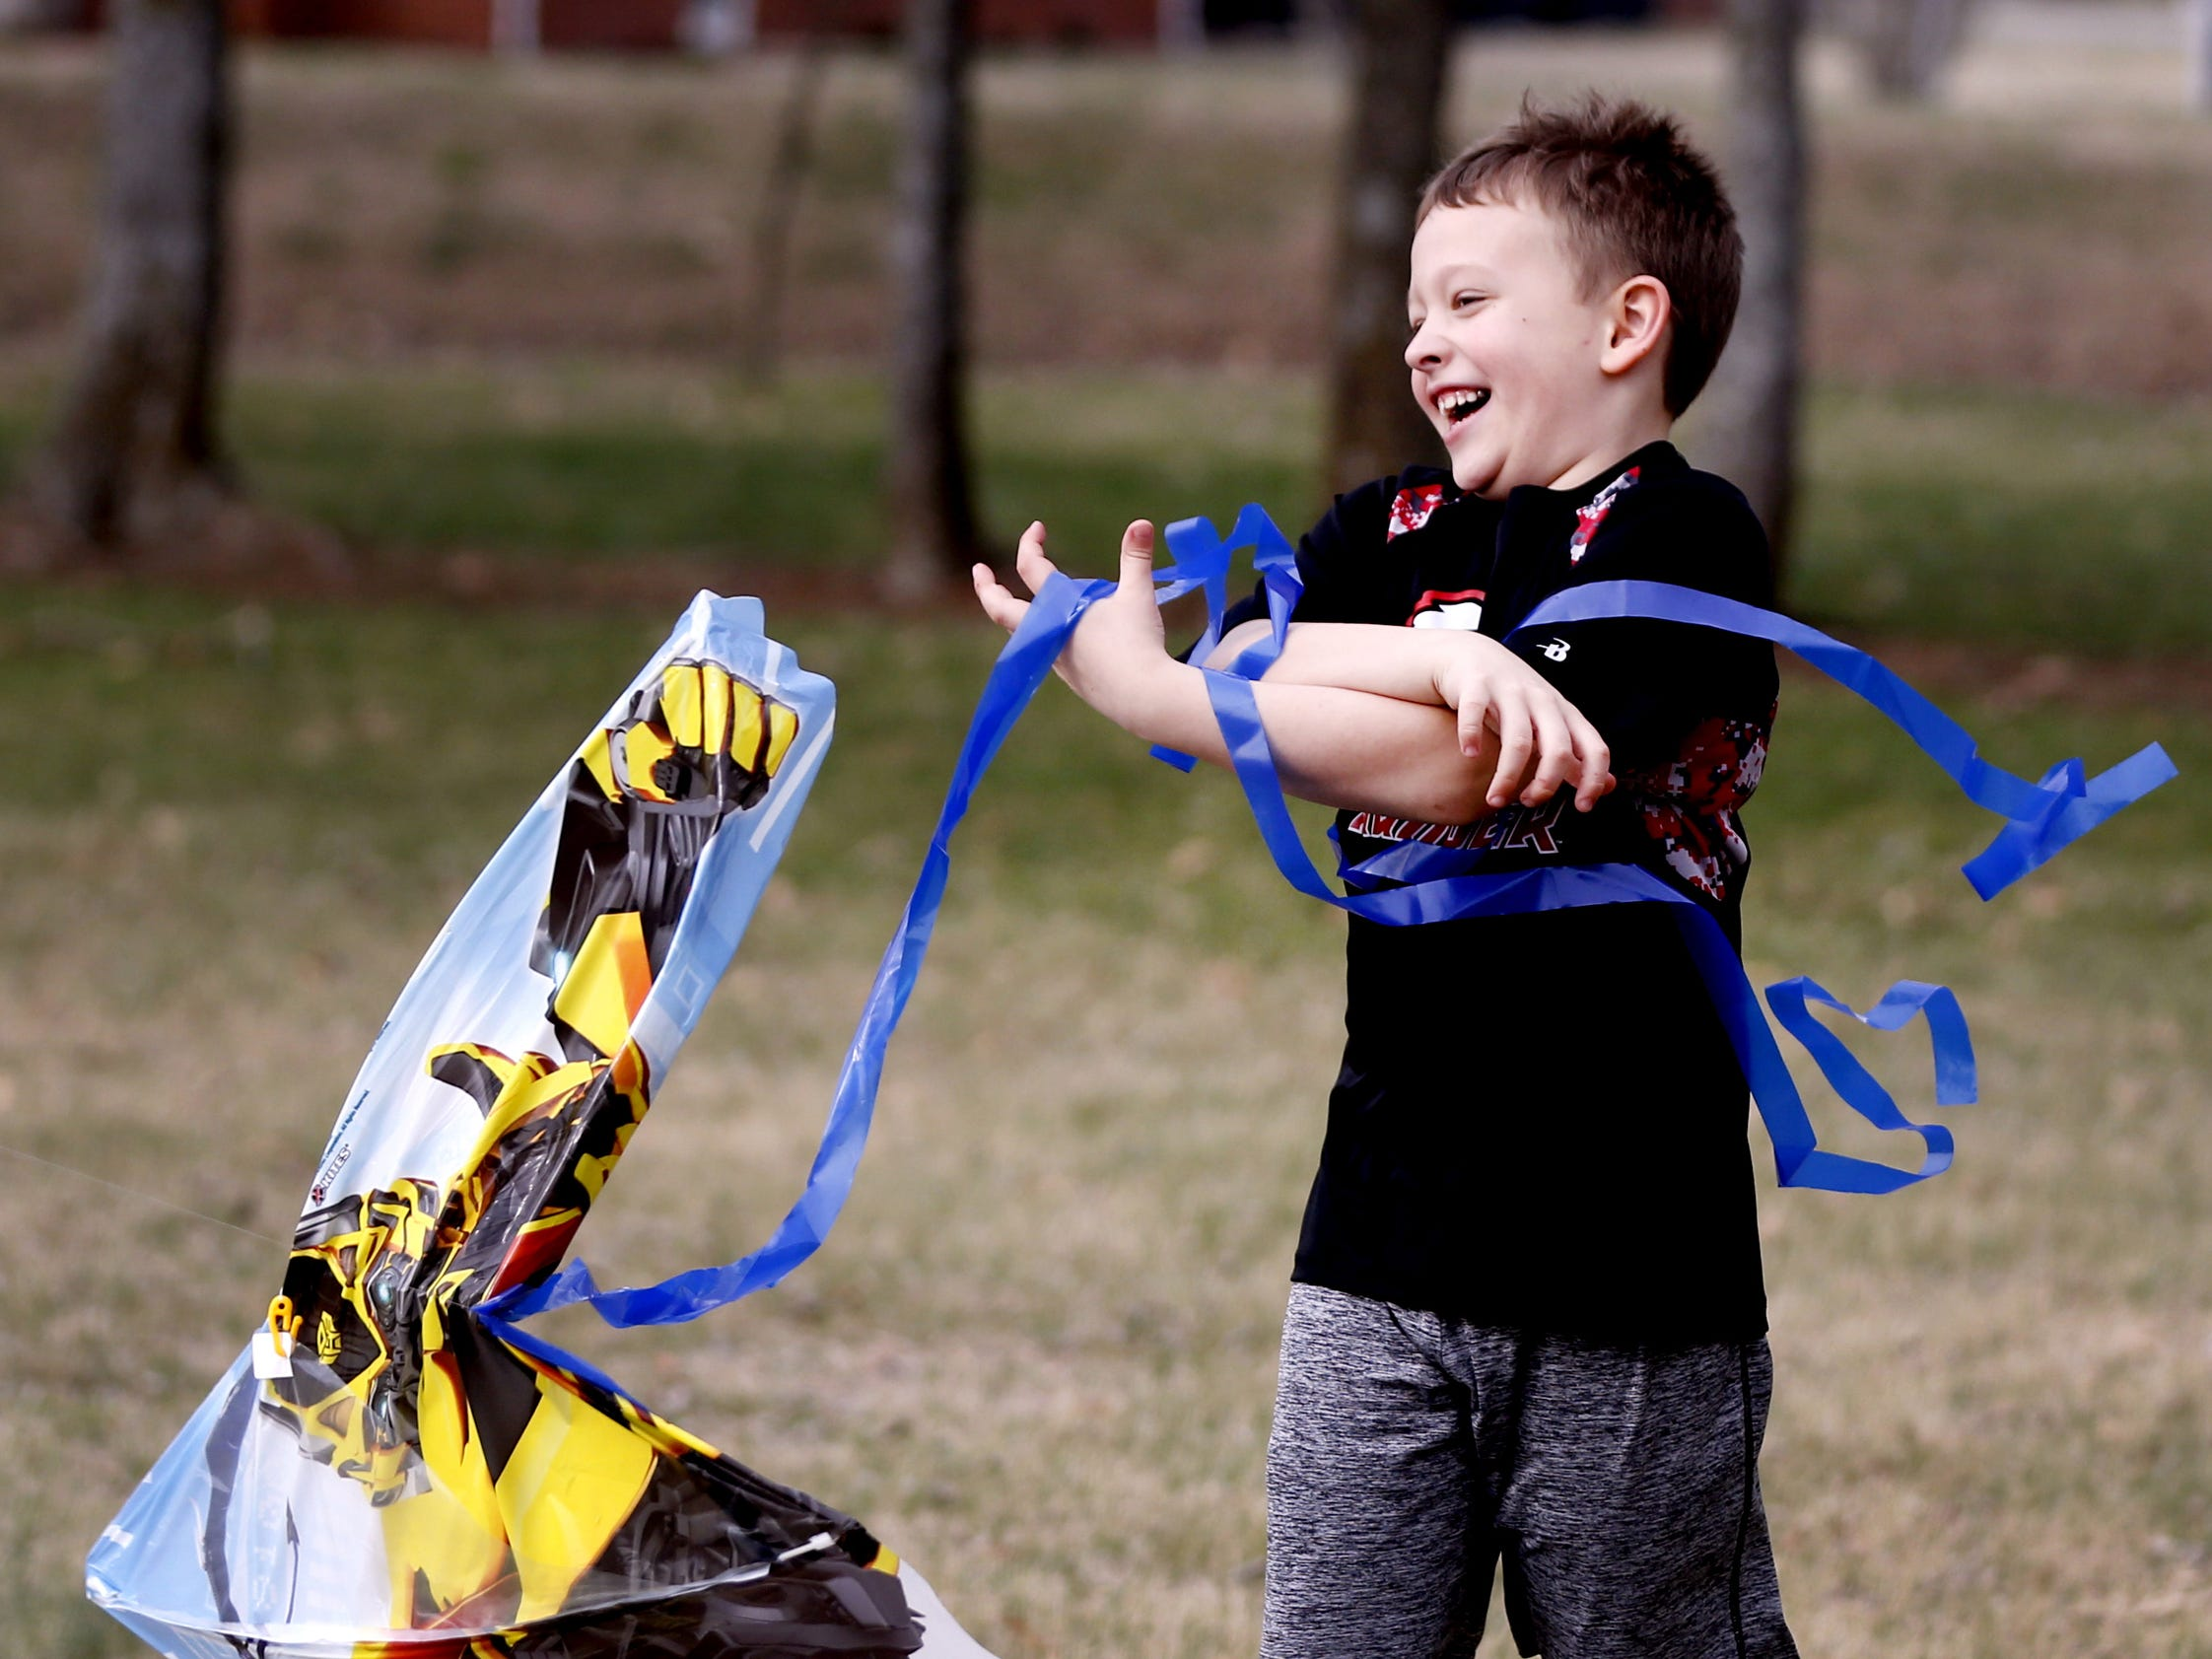 Declan Rockwood, 6 tires to get his kite to take flight on the breezy and warmer than normal day at Barfield Crescent Park, in Murfreesboro, on Monday, Feb. 19, 2018.